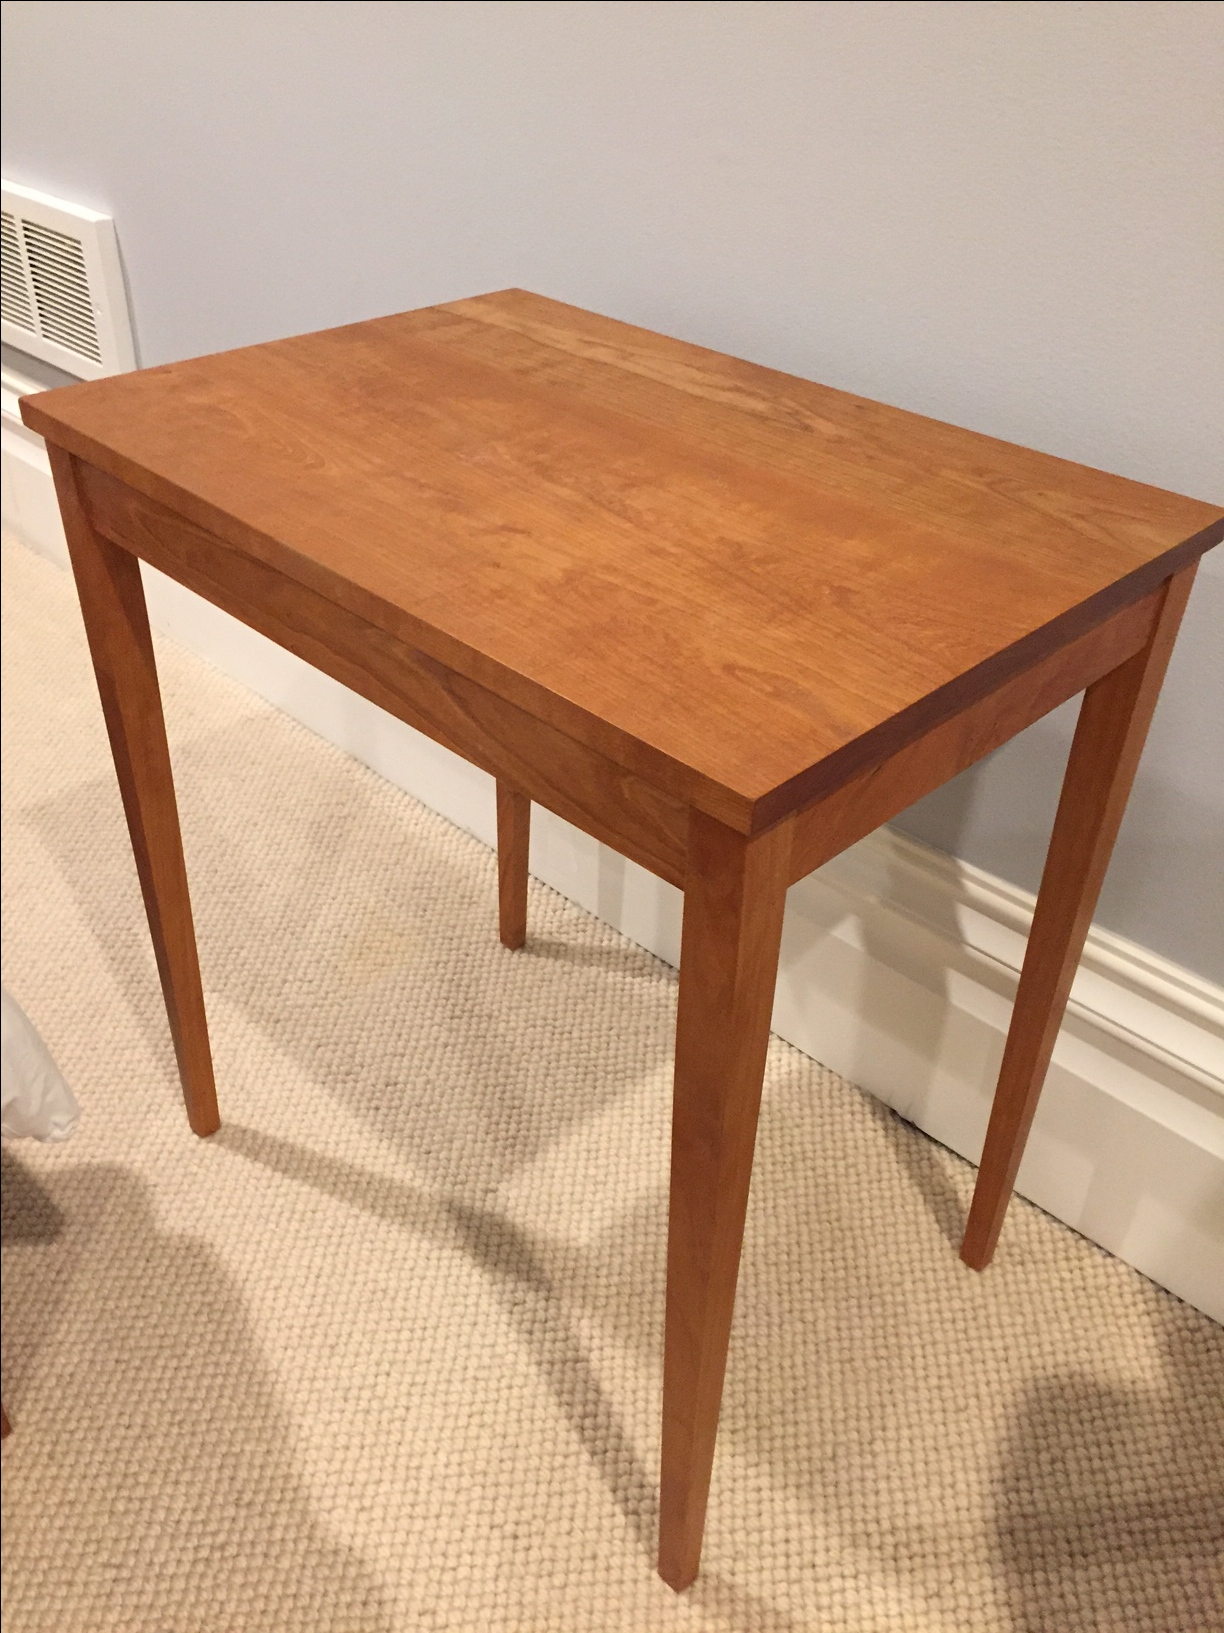 Awesome Thos Moser Rectangular Table, Minimus In Cherry   Image 2 Of 3